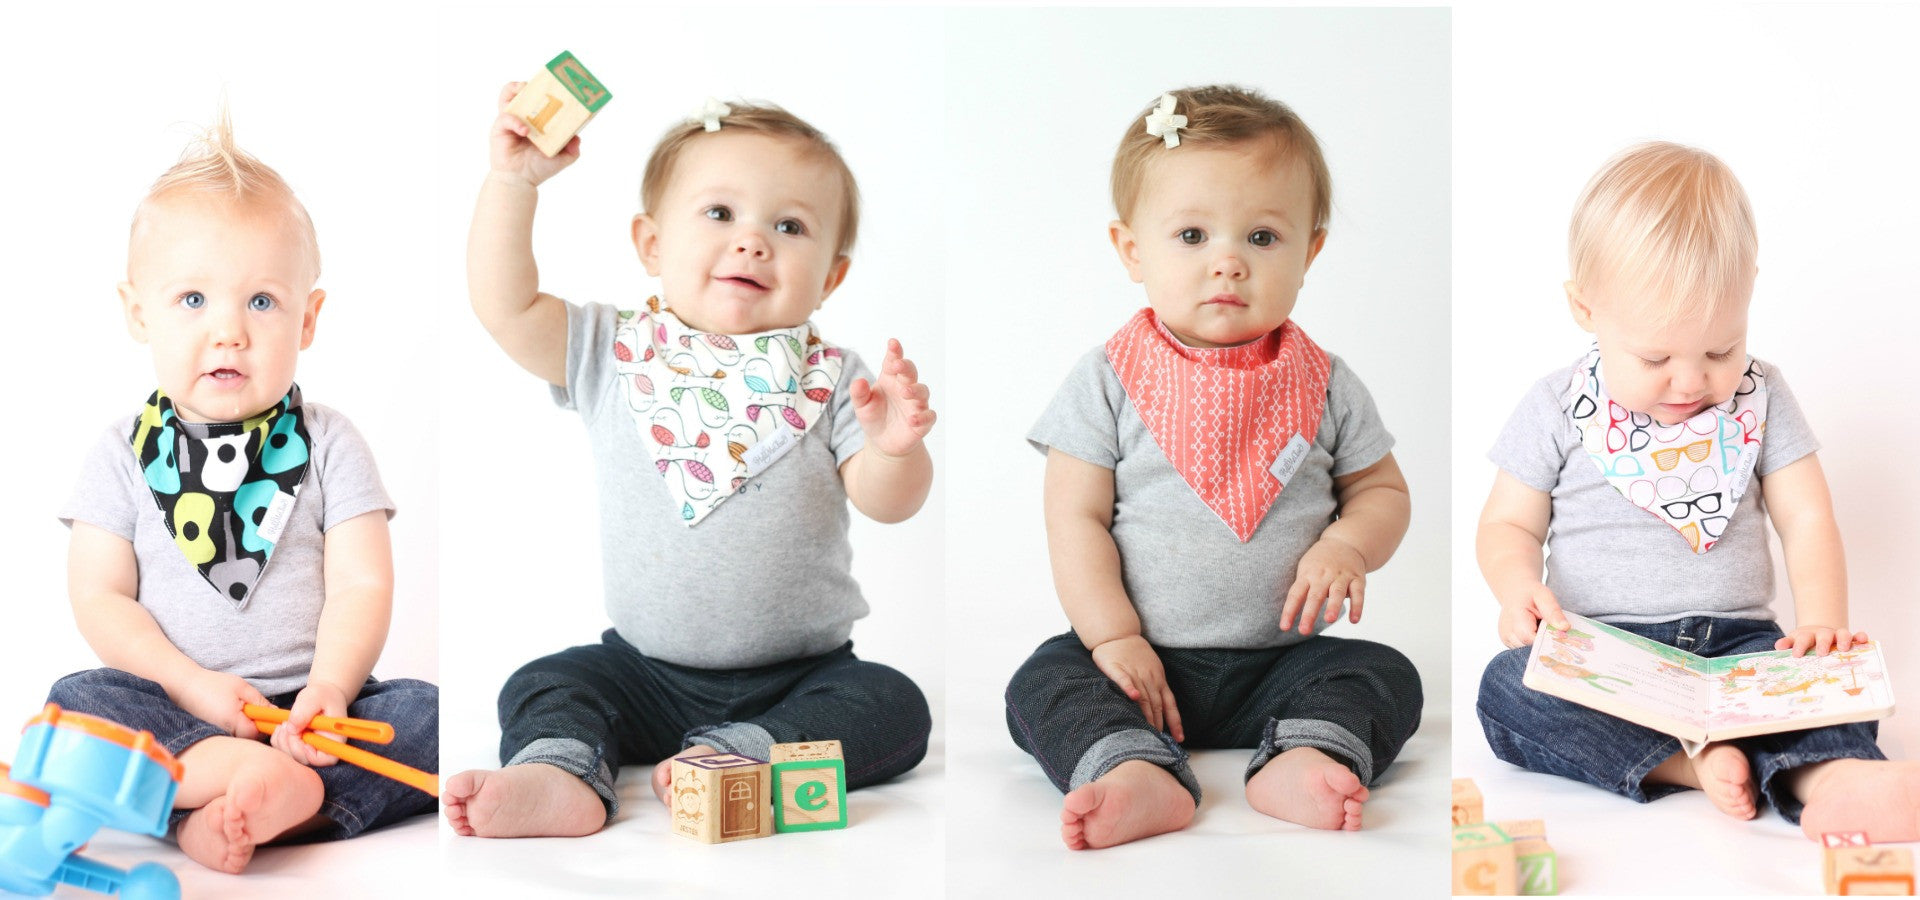 Hold Me Close Bandana Bib Sets